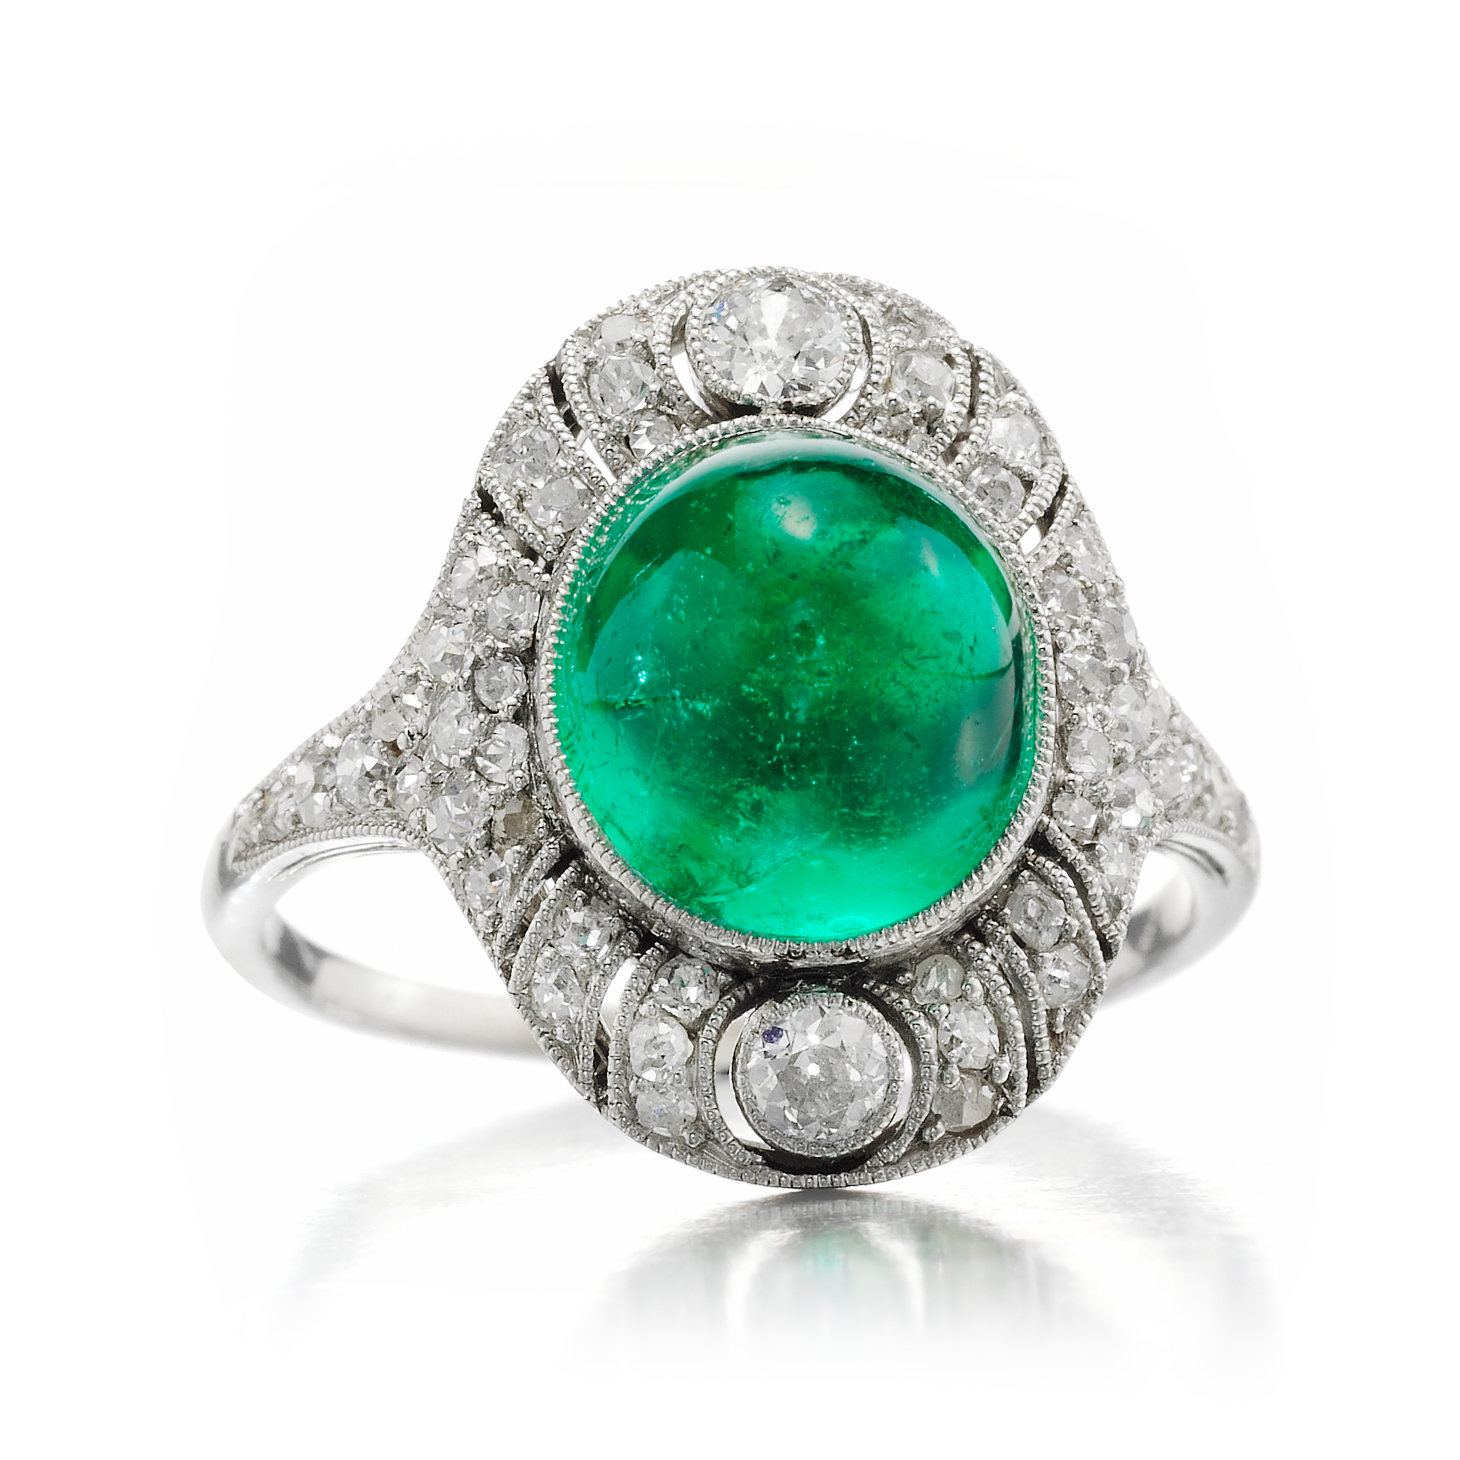 An Art Deco Cabochon Emerald and Diamond Ring